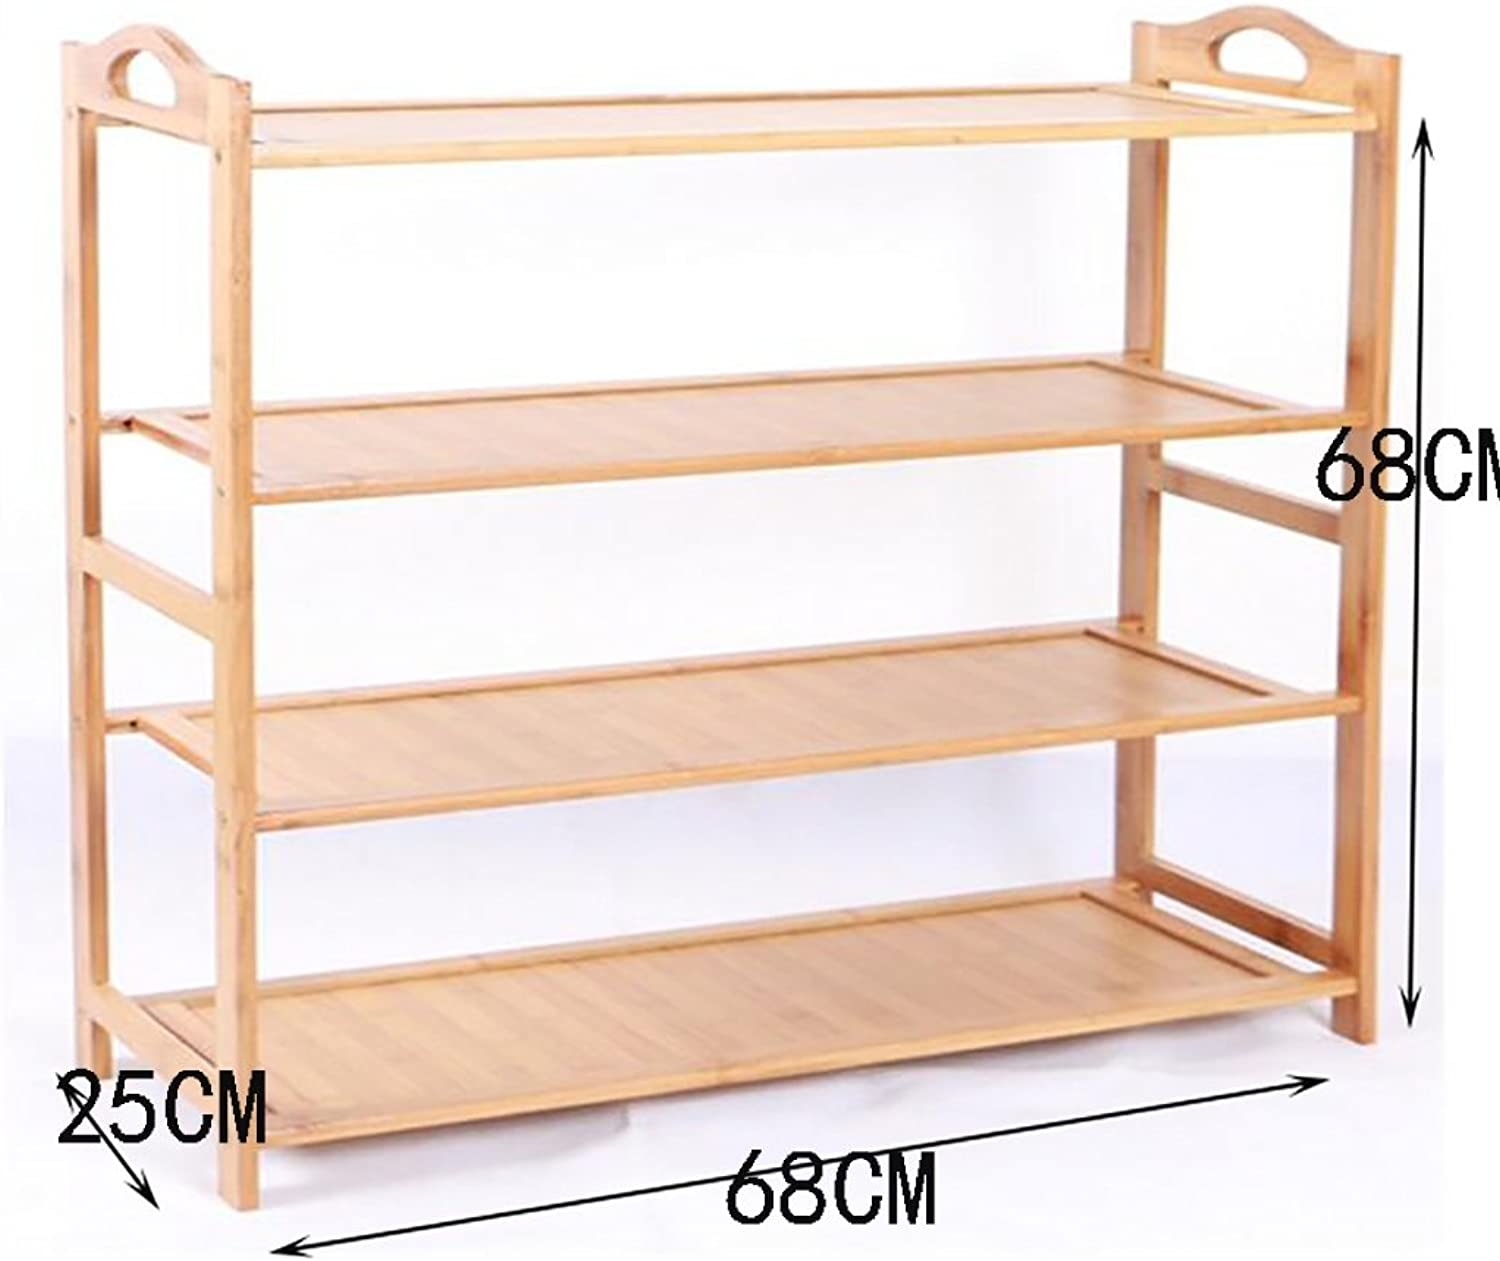 shoes Bench Organizing Rack Bamboo Simple shoes Rack Multi - Storey shoes Rack Wooden shoes Rack Multi - Storey Dormitory shoes Rack Living Room Shelves (color   3, Size   68CM)